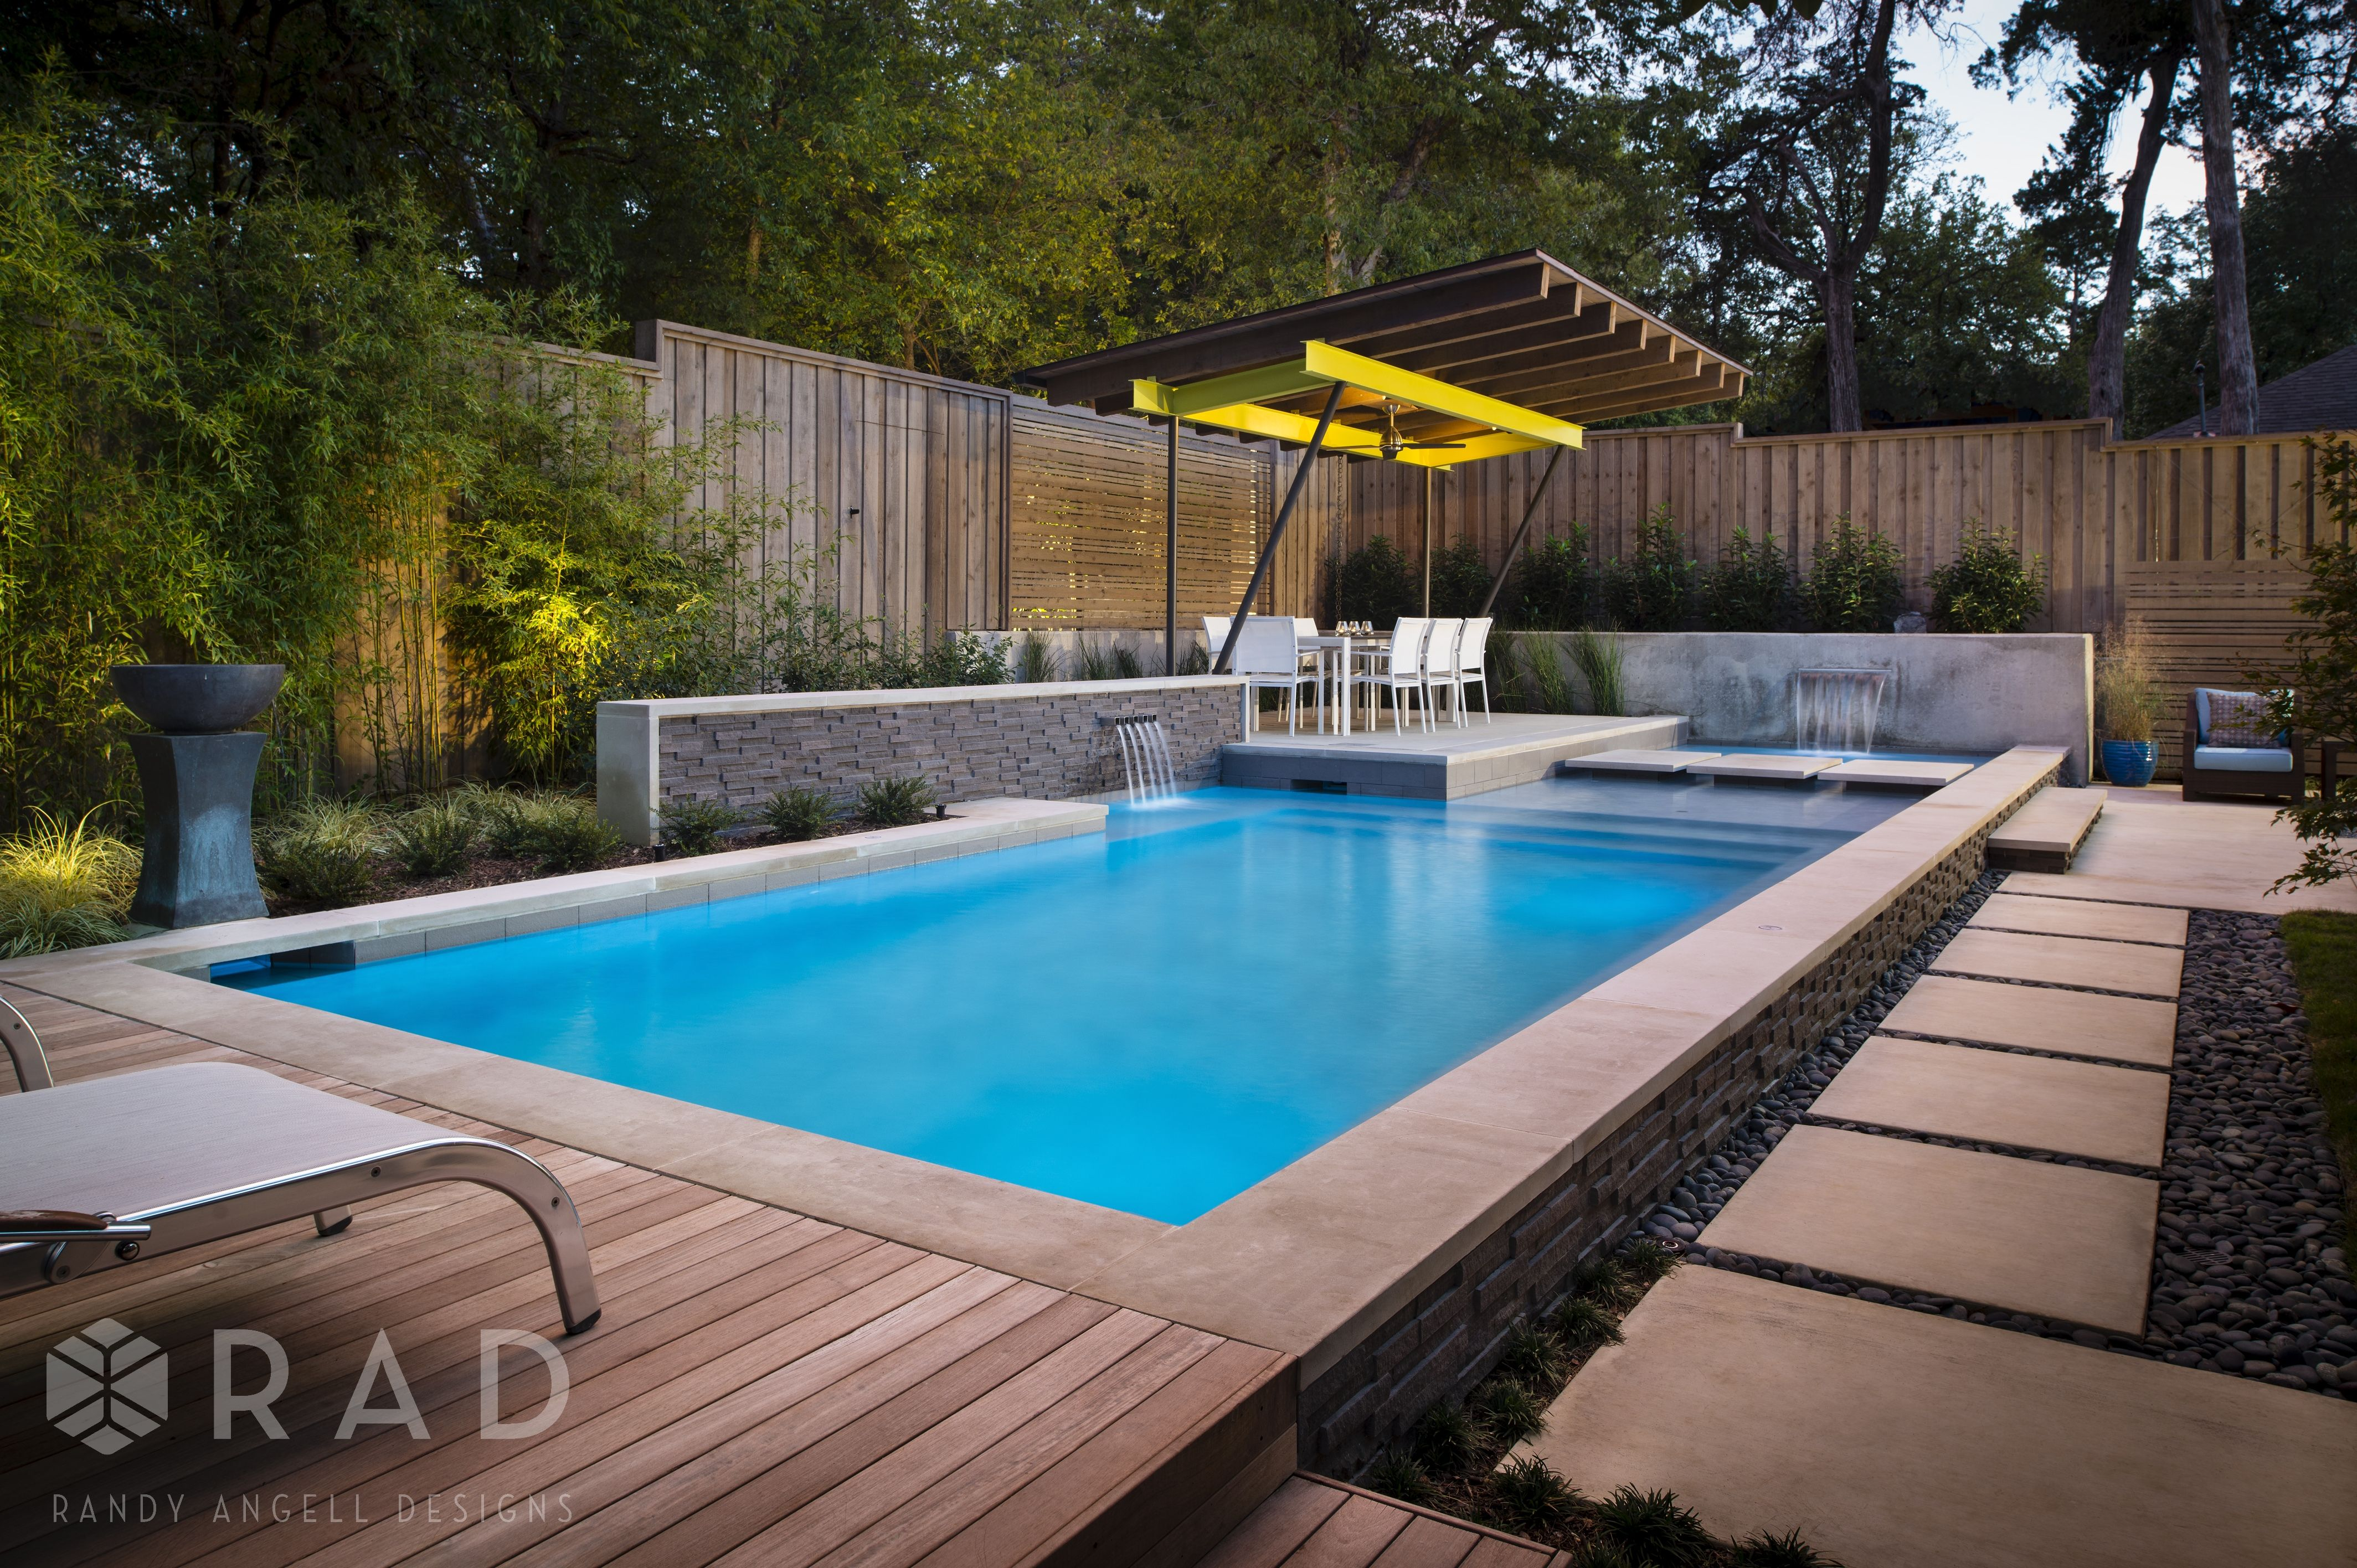 Modern Linear Swimming And Spa Design By Randy Angell Designs Features A Raised Pool Beam With A Grey Le Outdoor Pool Pool Environment Pool Landscape Design